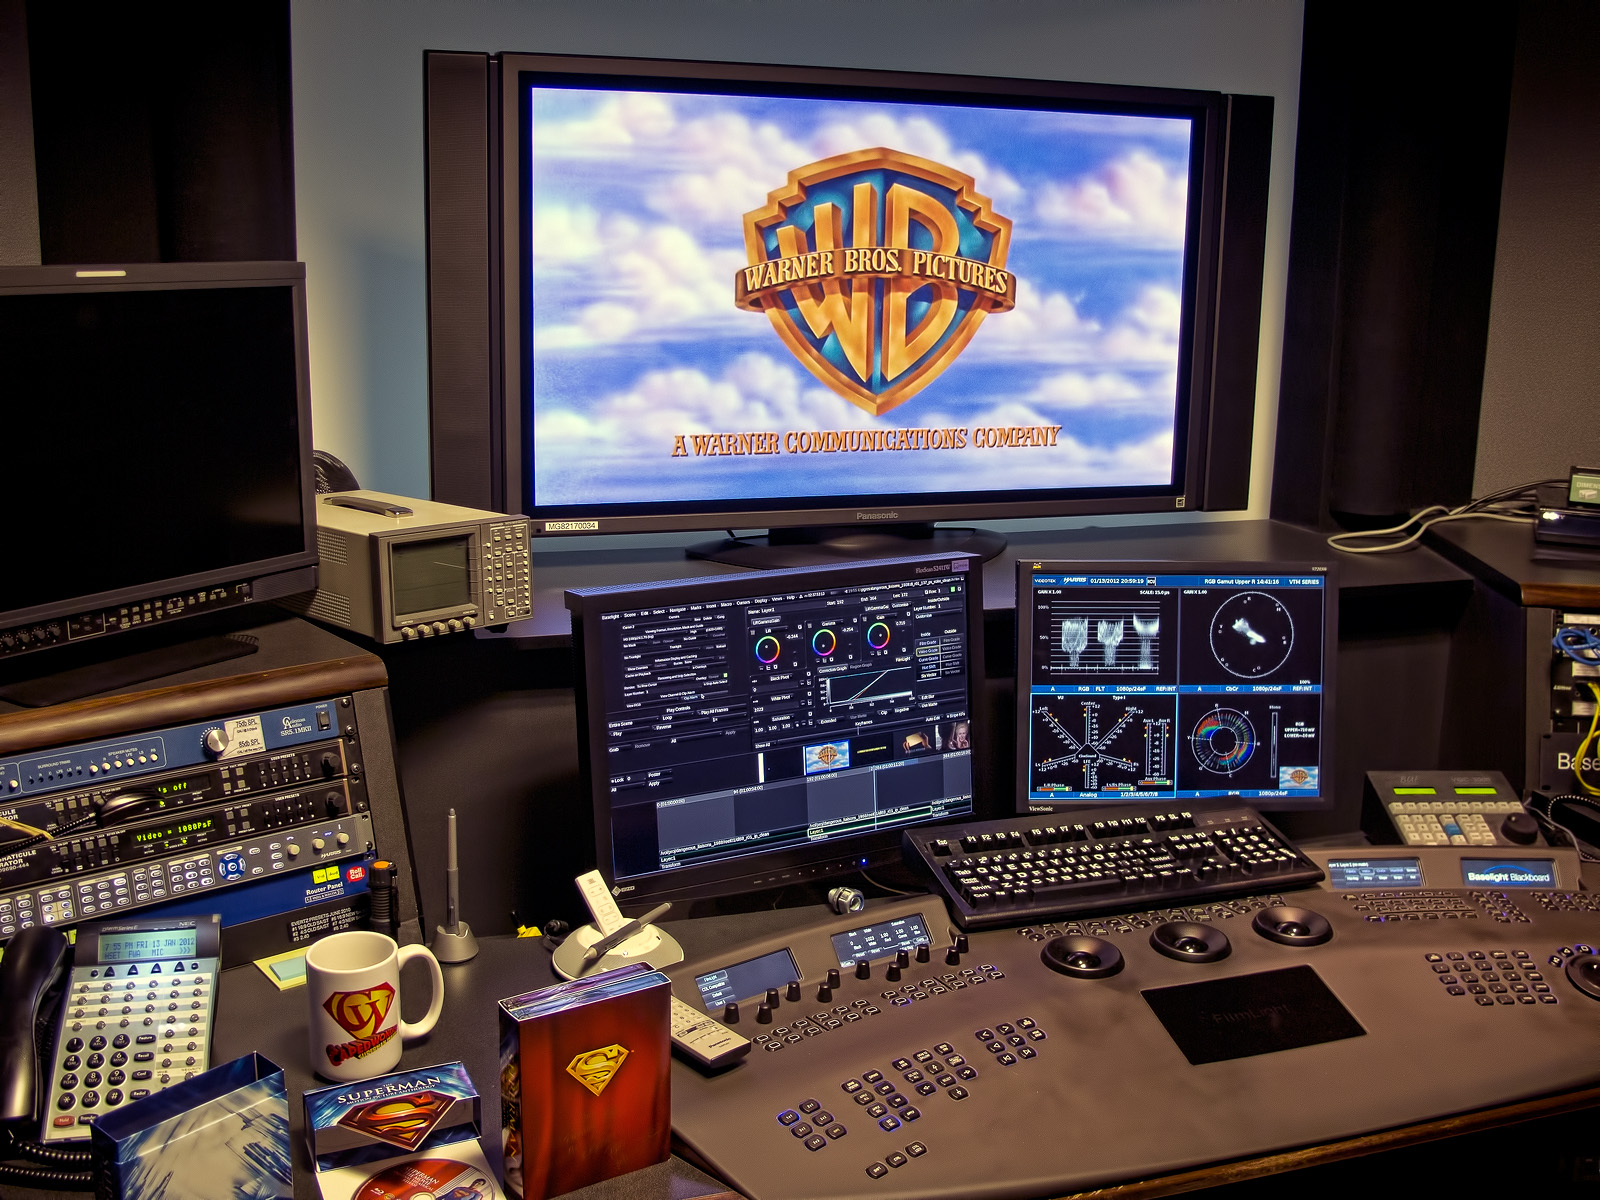 Senior Mastering Colorist Pat Miller's suite at Warner Bros. Motion Picture Imaging on January 13, 2012. Photo by Jim Bowers.